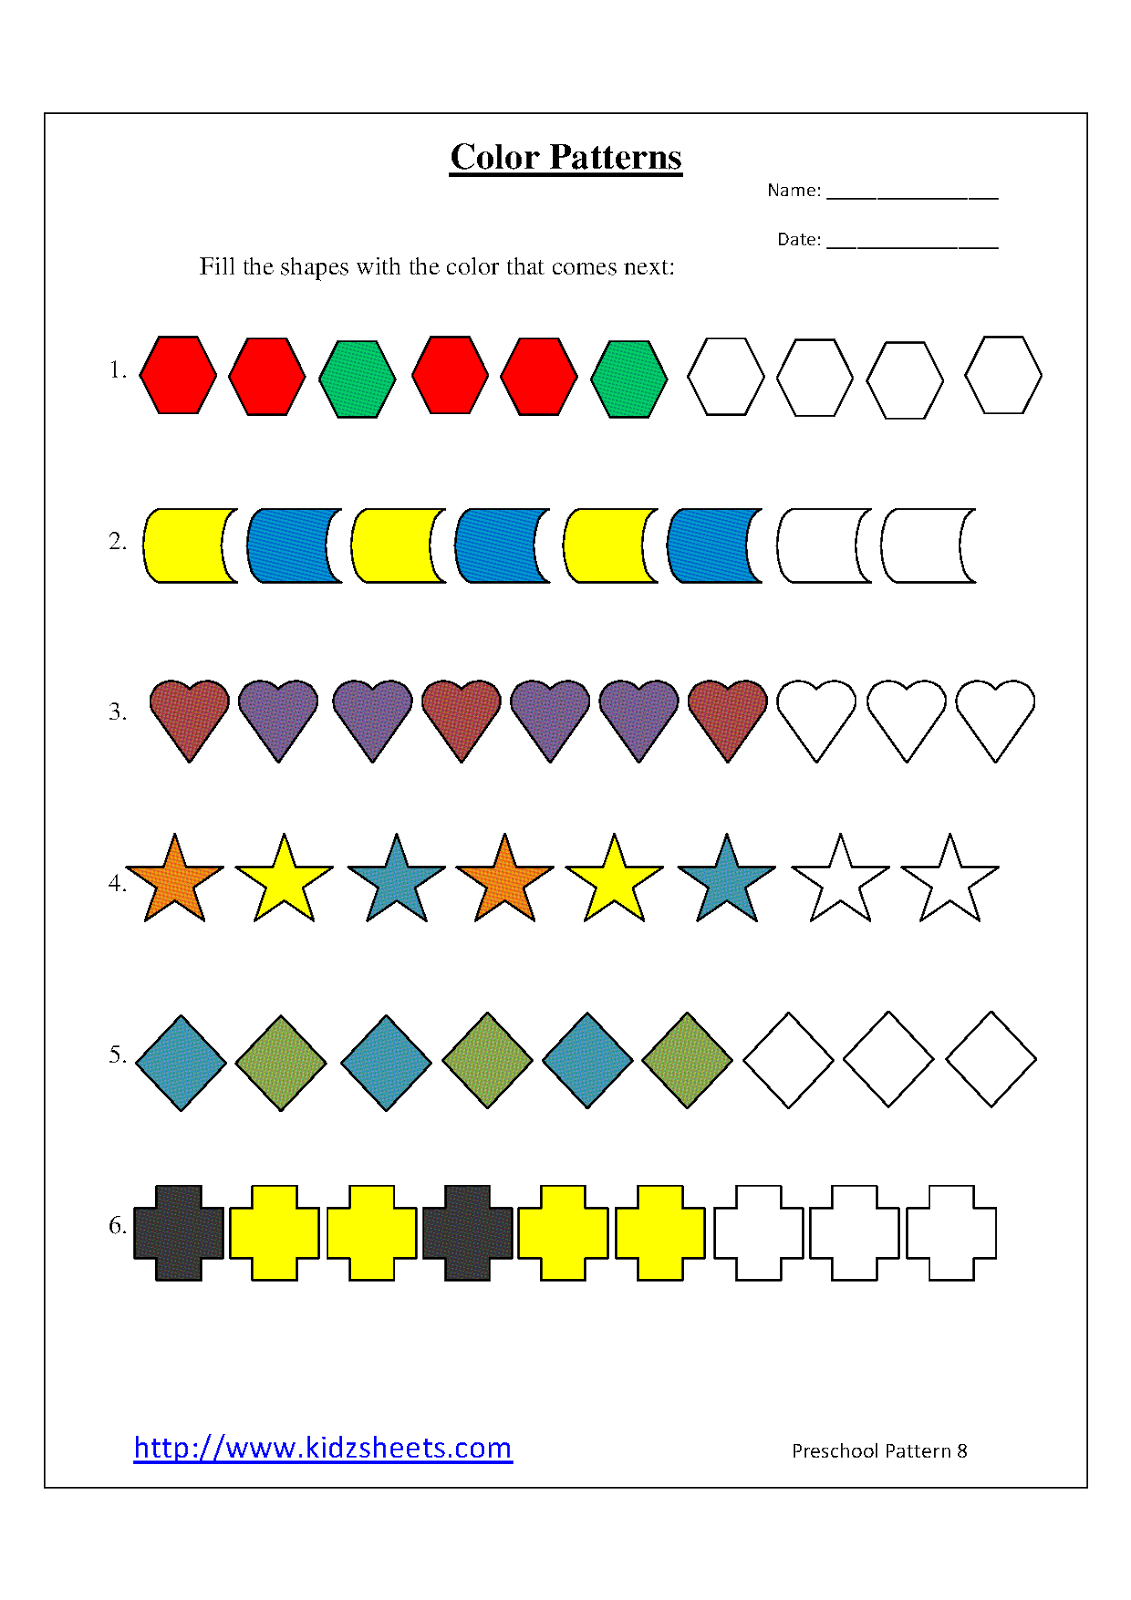 Printables Preschool Pattern Worksheets Cinecoa Thousands of – Patterns Worksheets for Kindergarten